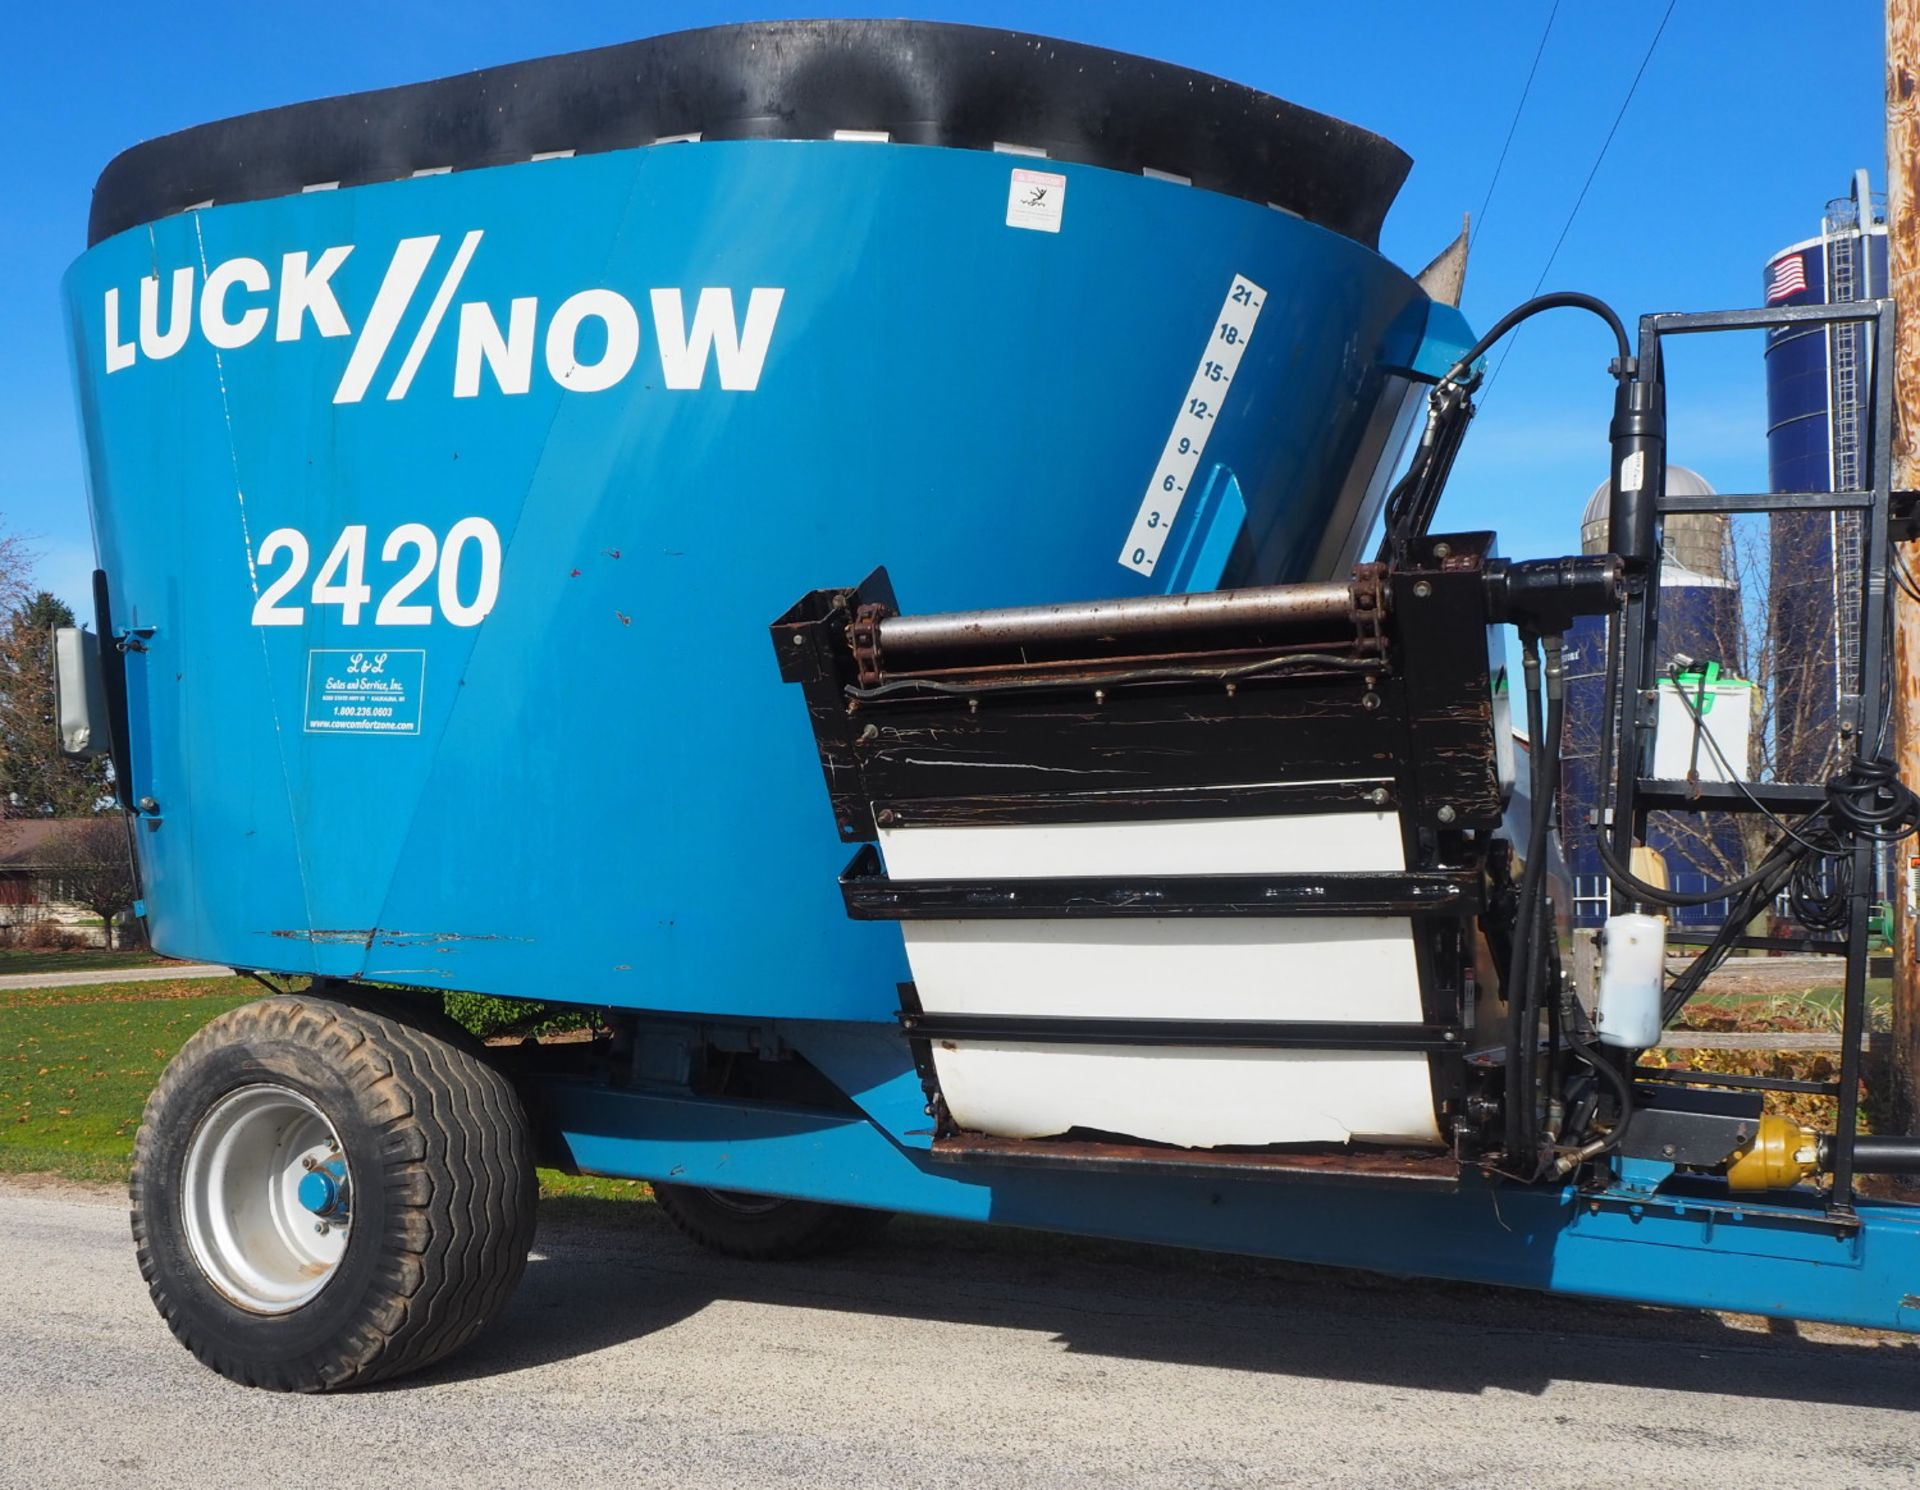 LUCKNOW 2420 PORTABLE VERTICAL TMR MIXER - Image 3 of 6